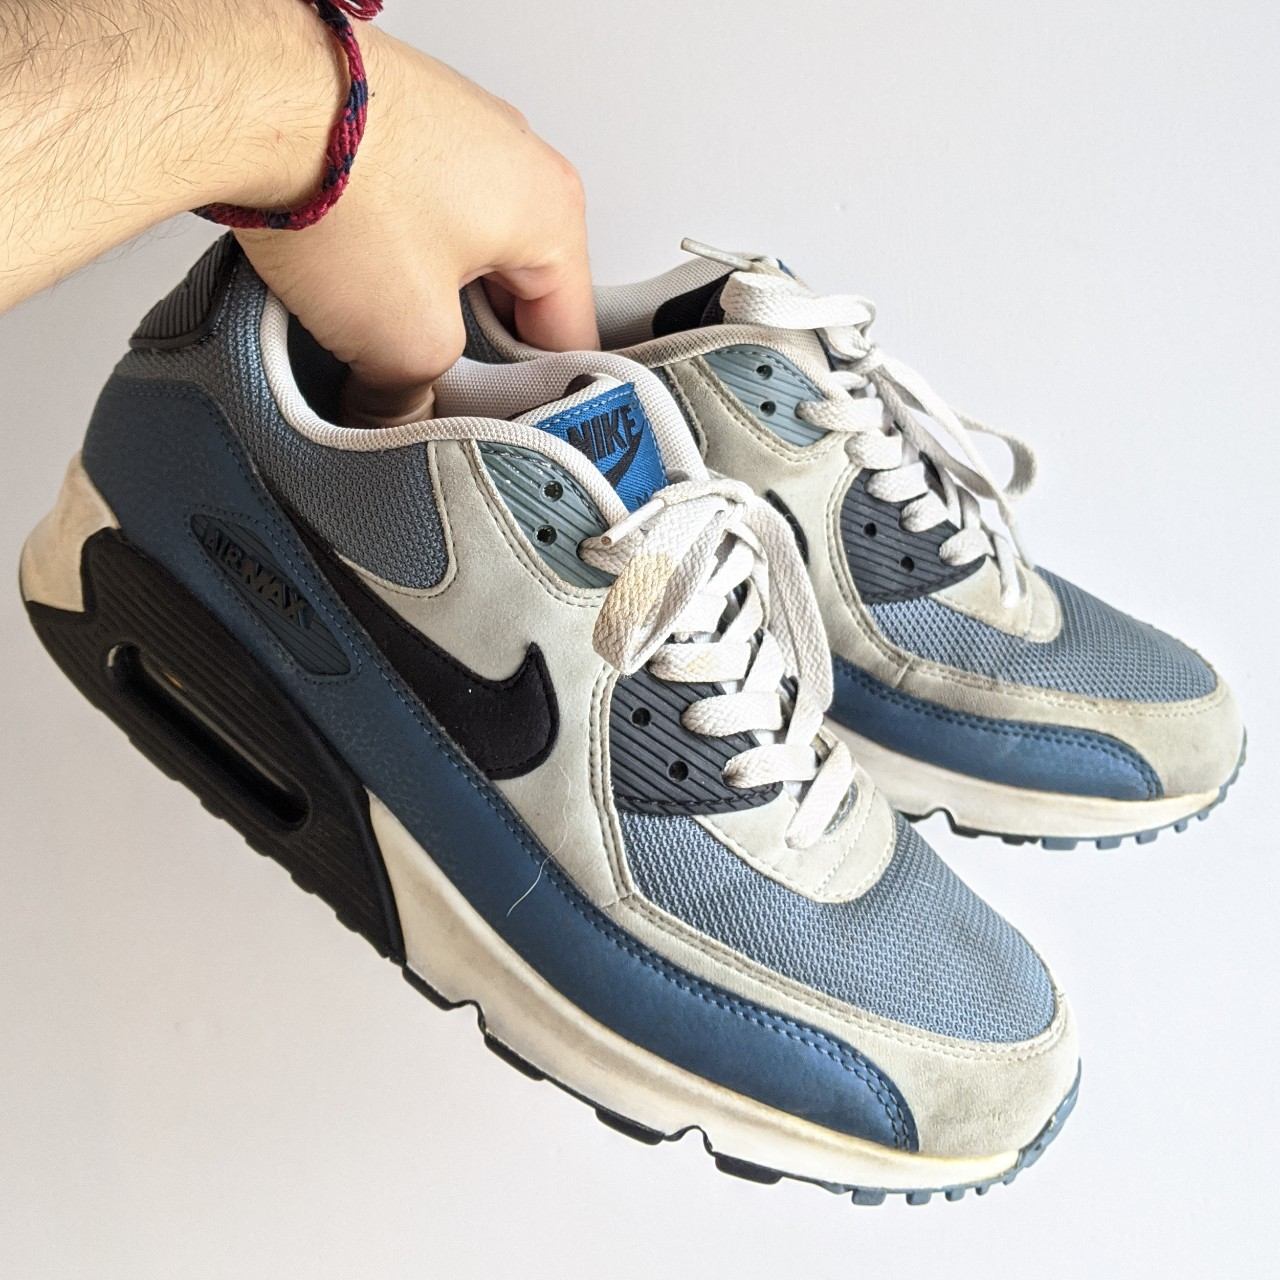 ☑️ 2014 Nike Air Max 90 Essential Trainers in Grey...